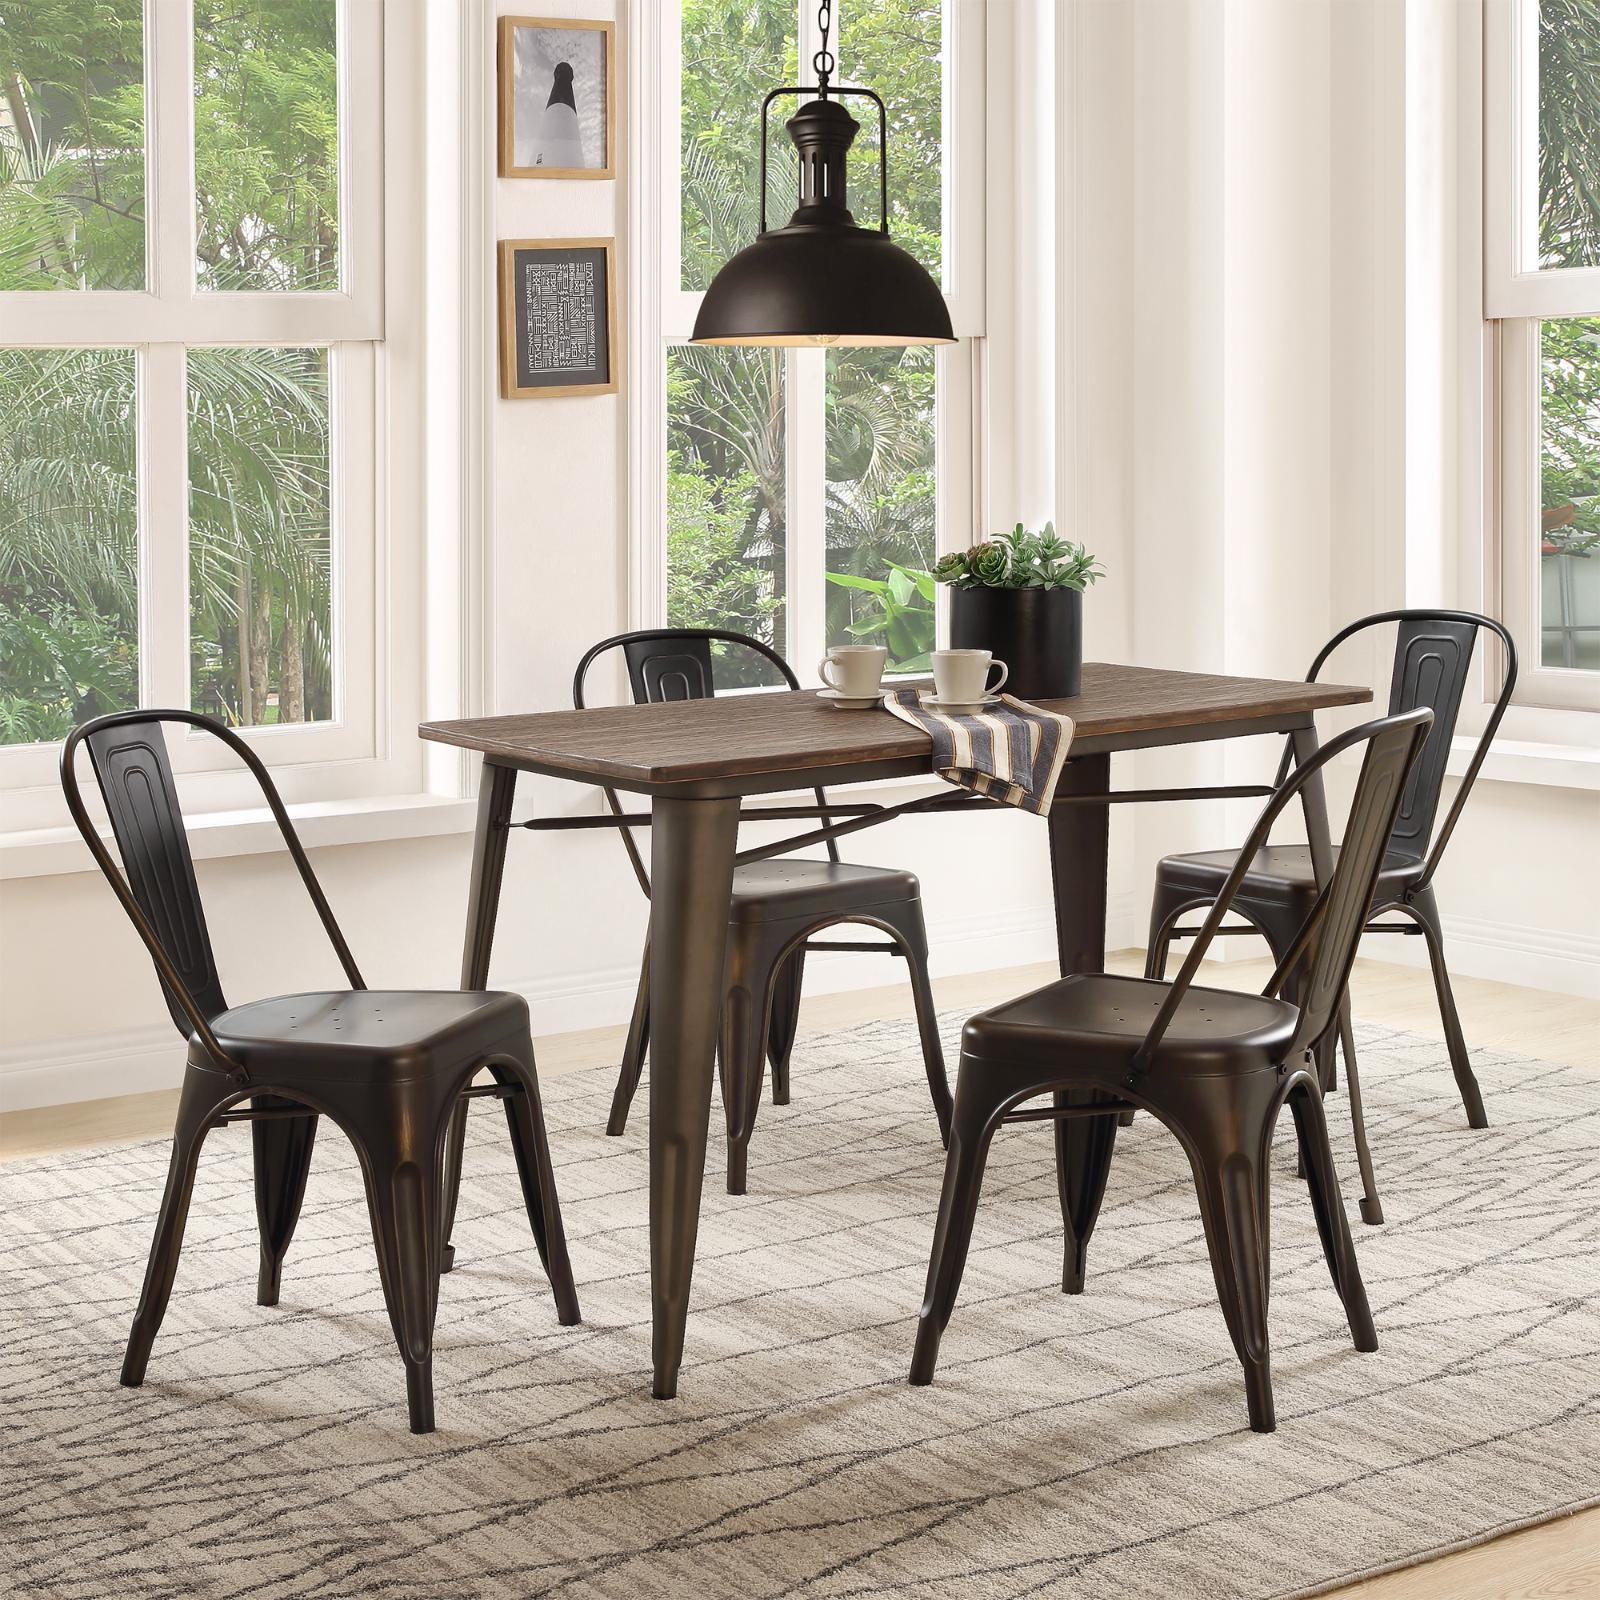 5 piece dining set table chairs set